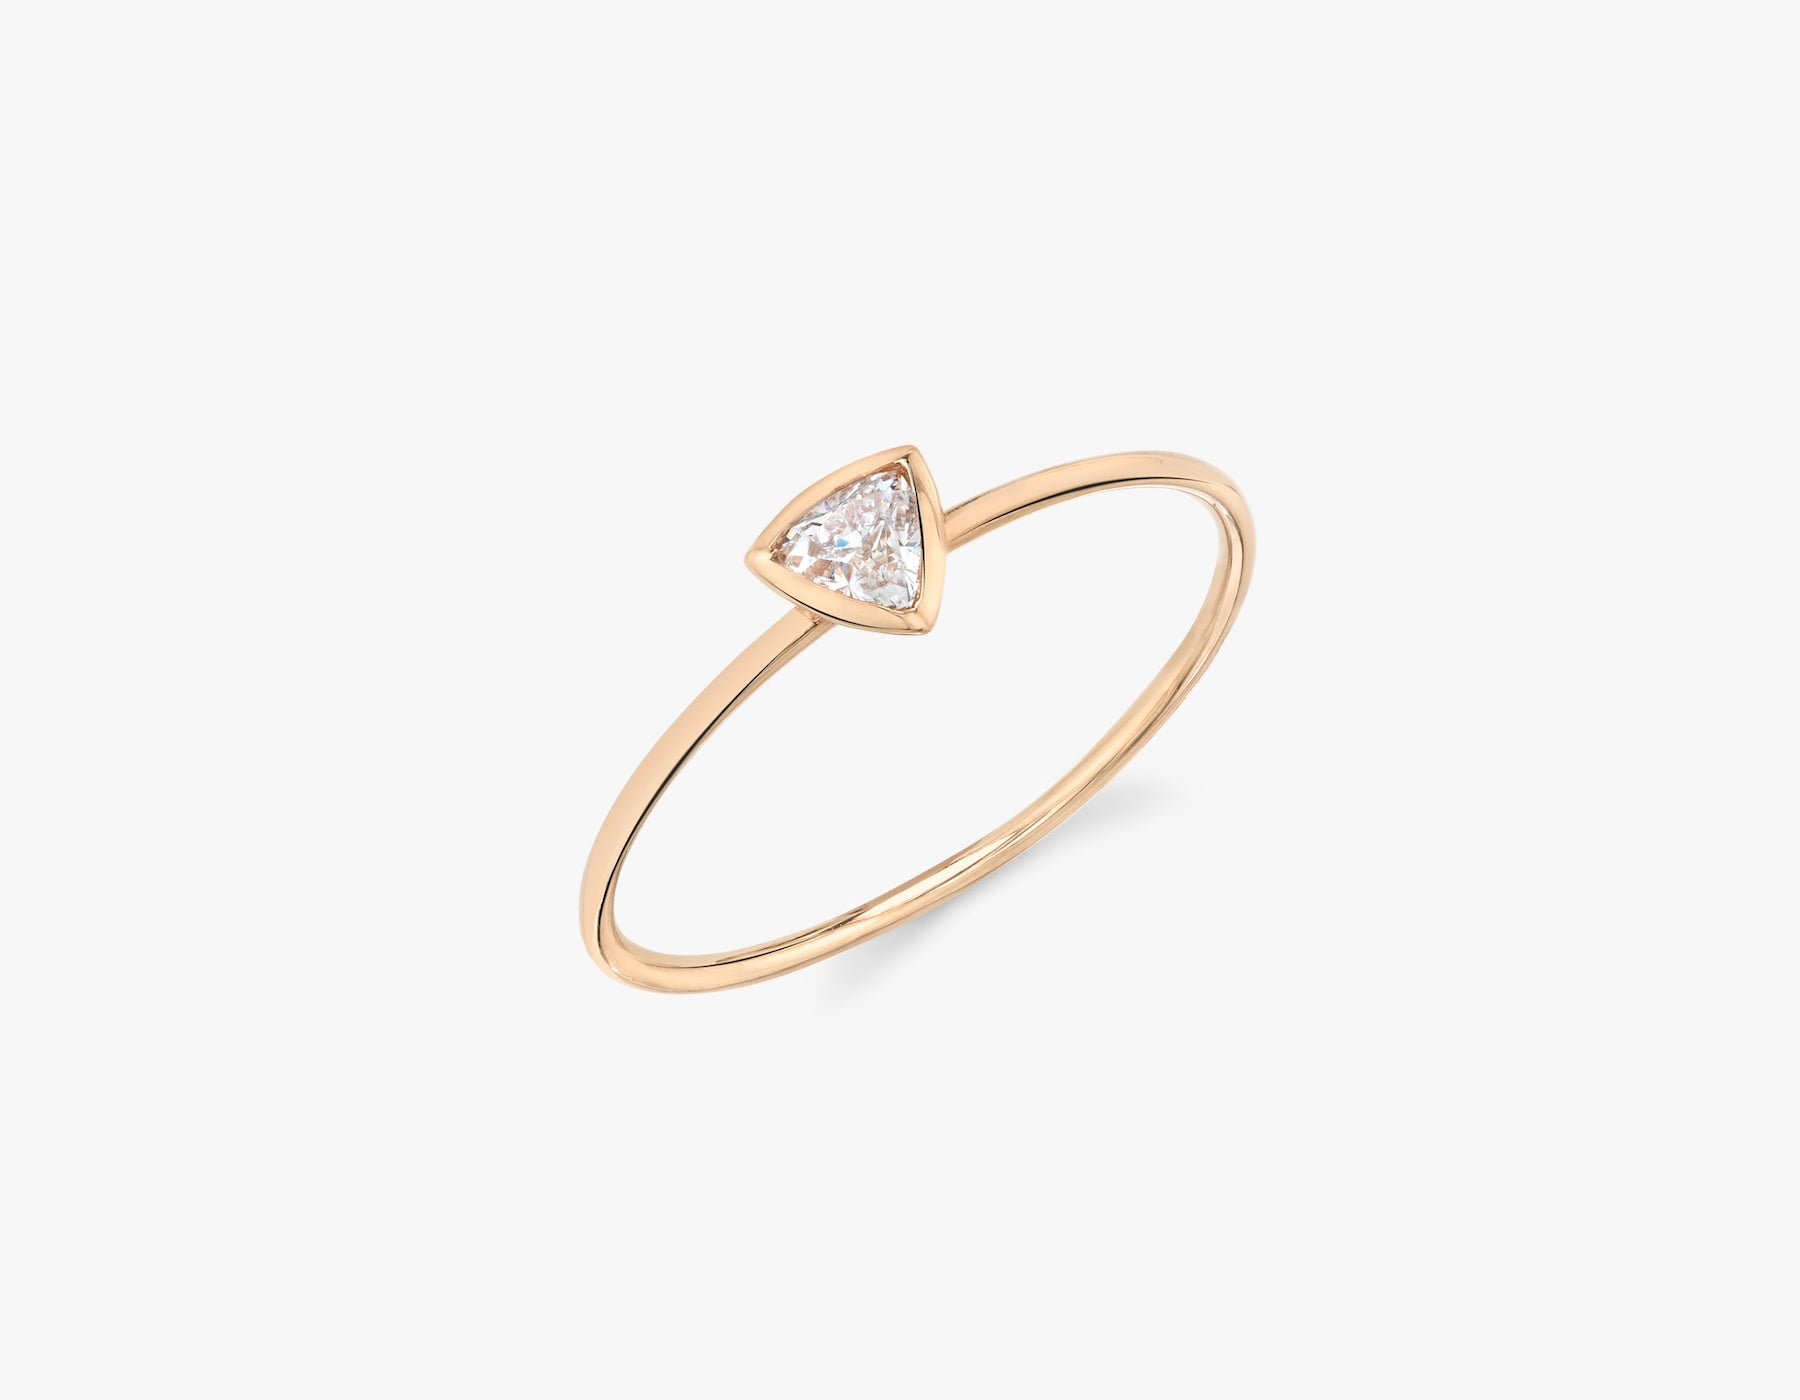 Vrai simple minimalist Trillion Diamond Bezel Ring, 14K Rose Gold